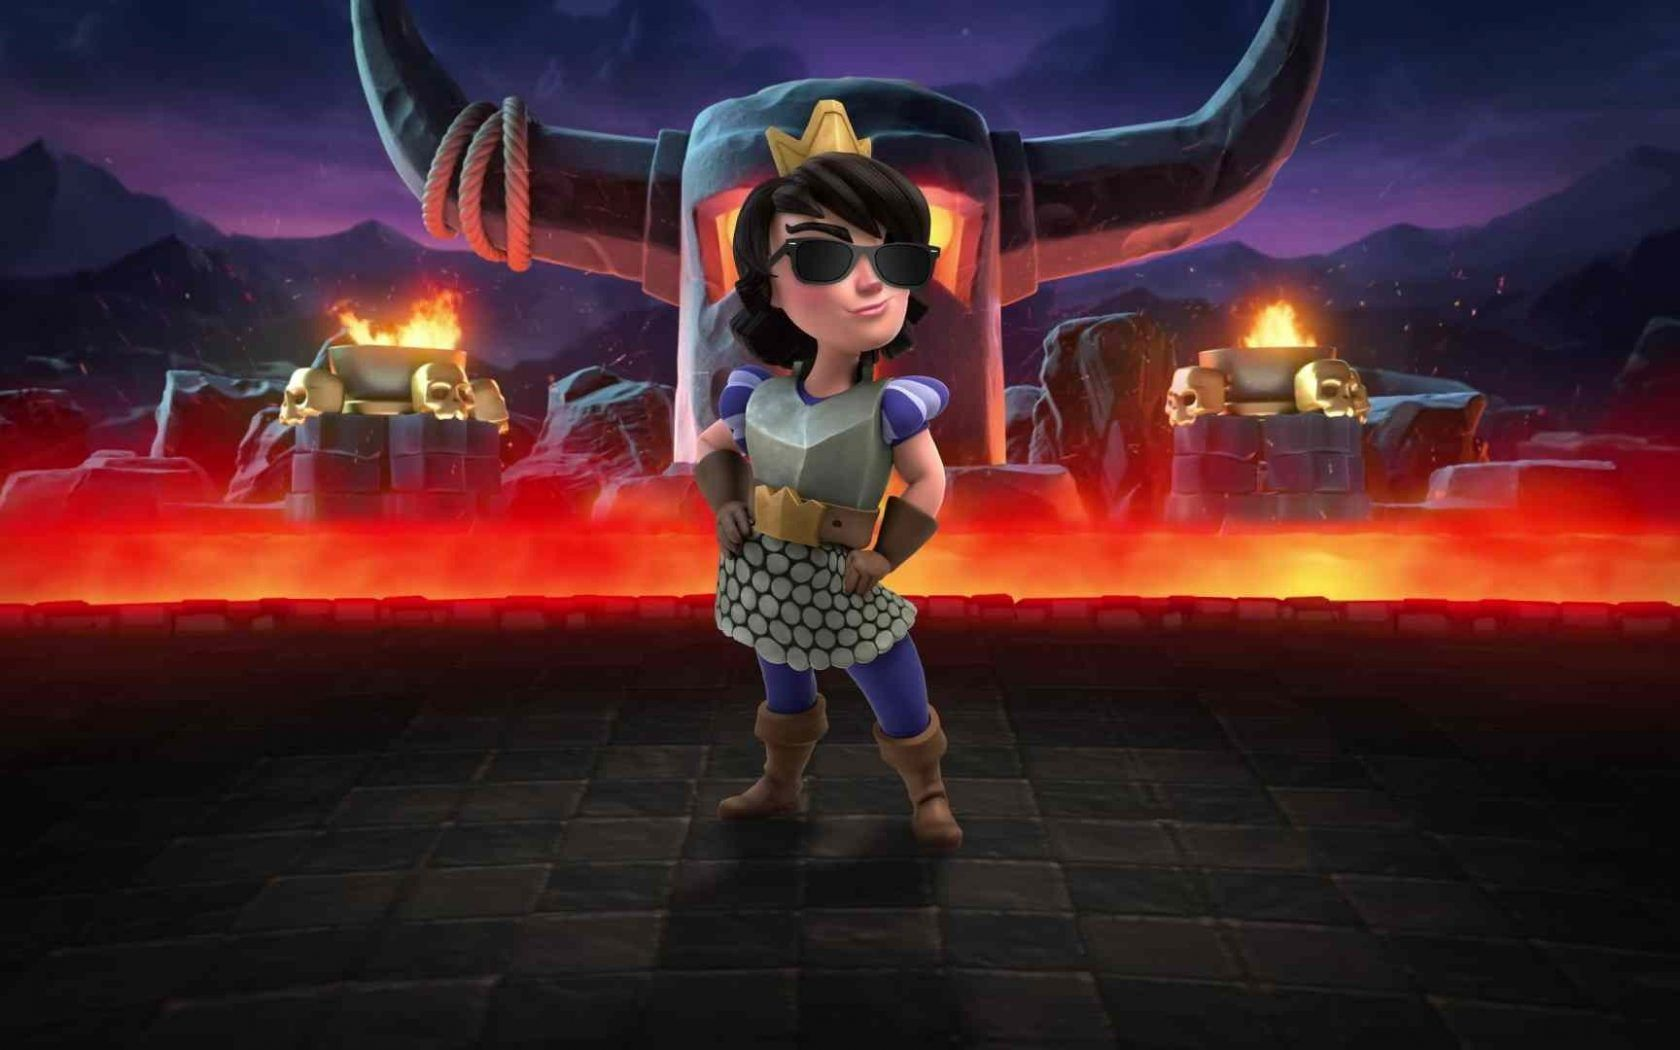 Pin by BORN IN UA on Clash royale Clash royale Clash of clans 1680x1050